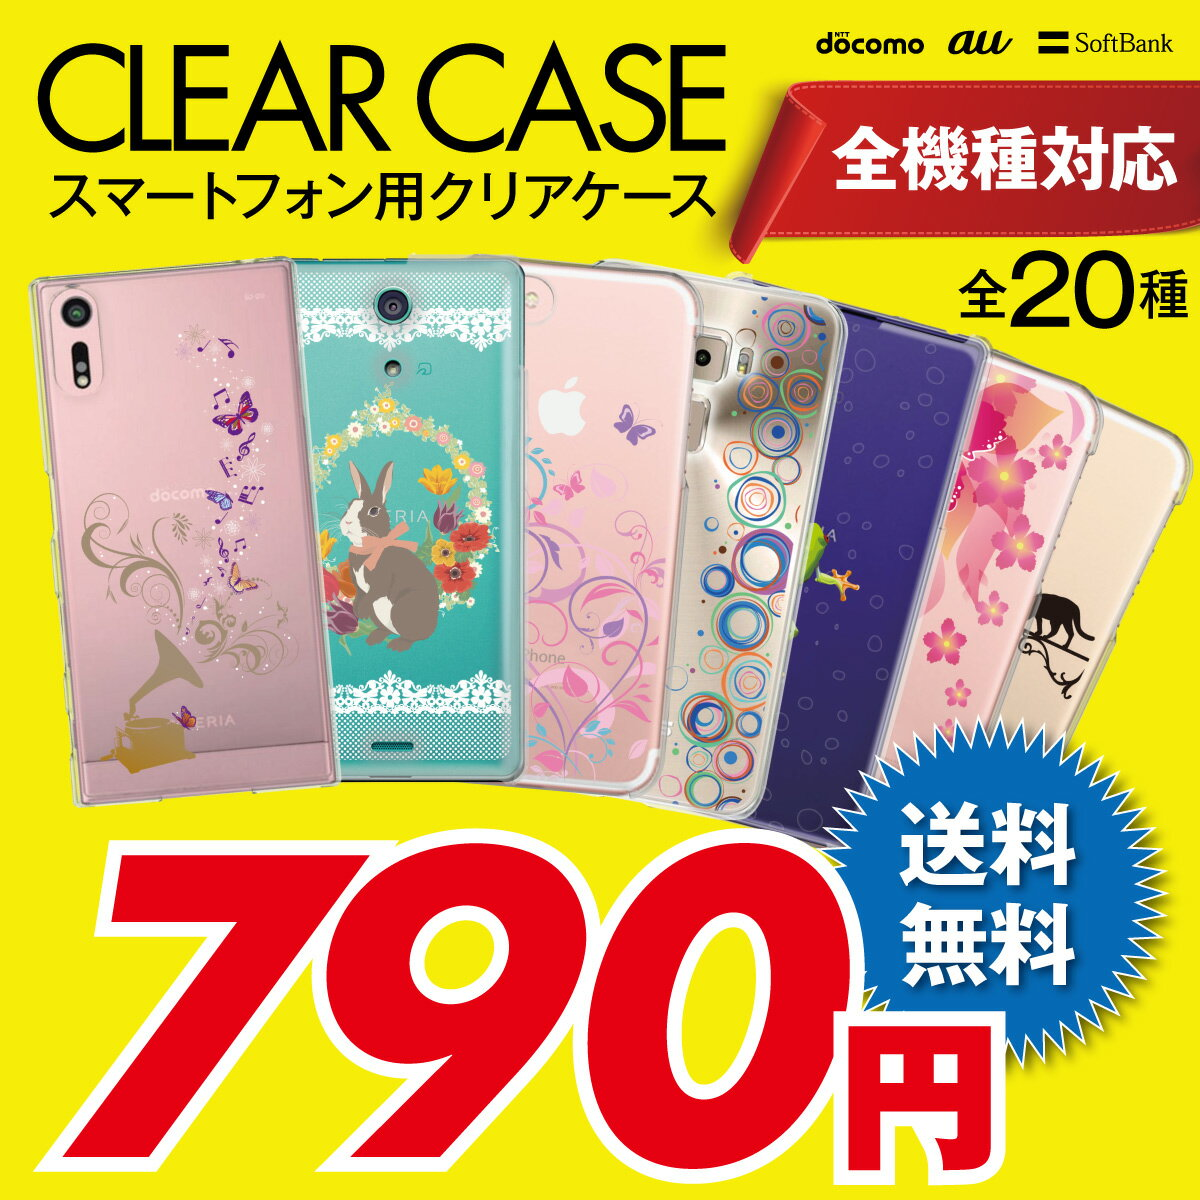 送料無料 スマホケース 全機種対応 ケース カバー ハードケース クリアケースiPhoneX iPhone8 iPhone7s Plus iPhone7 iPhone6s iPhone6 Plus iPhone SE 5s Xperia XZ1 SO-01K SO-02K XZ so-04j XZs so-03j aquos R SH-01K SHV41 sa04 発送はメール便